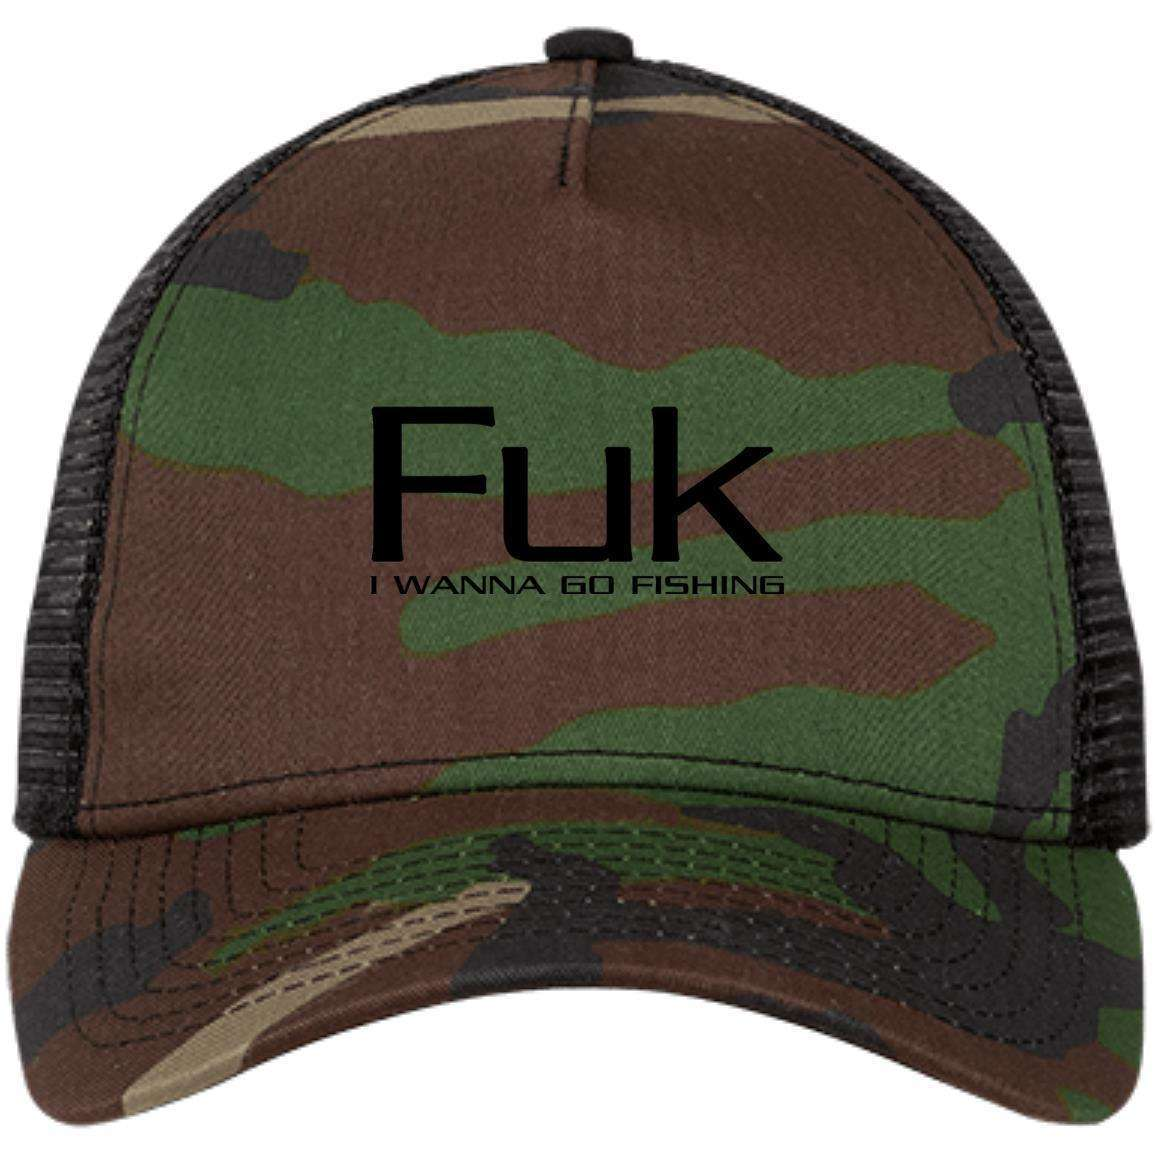 Fuk I Wanna Go Fishing Original Snapback Trucker Cap